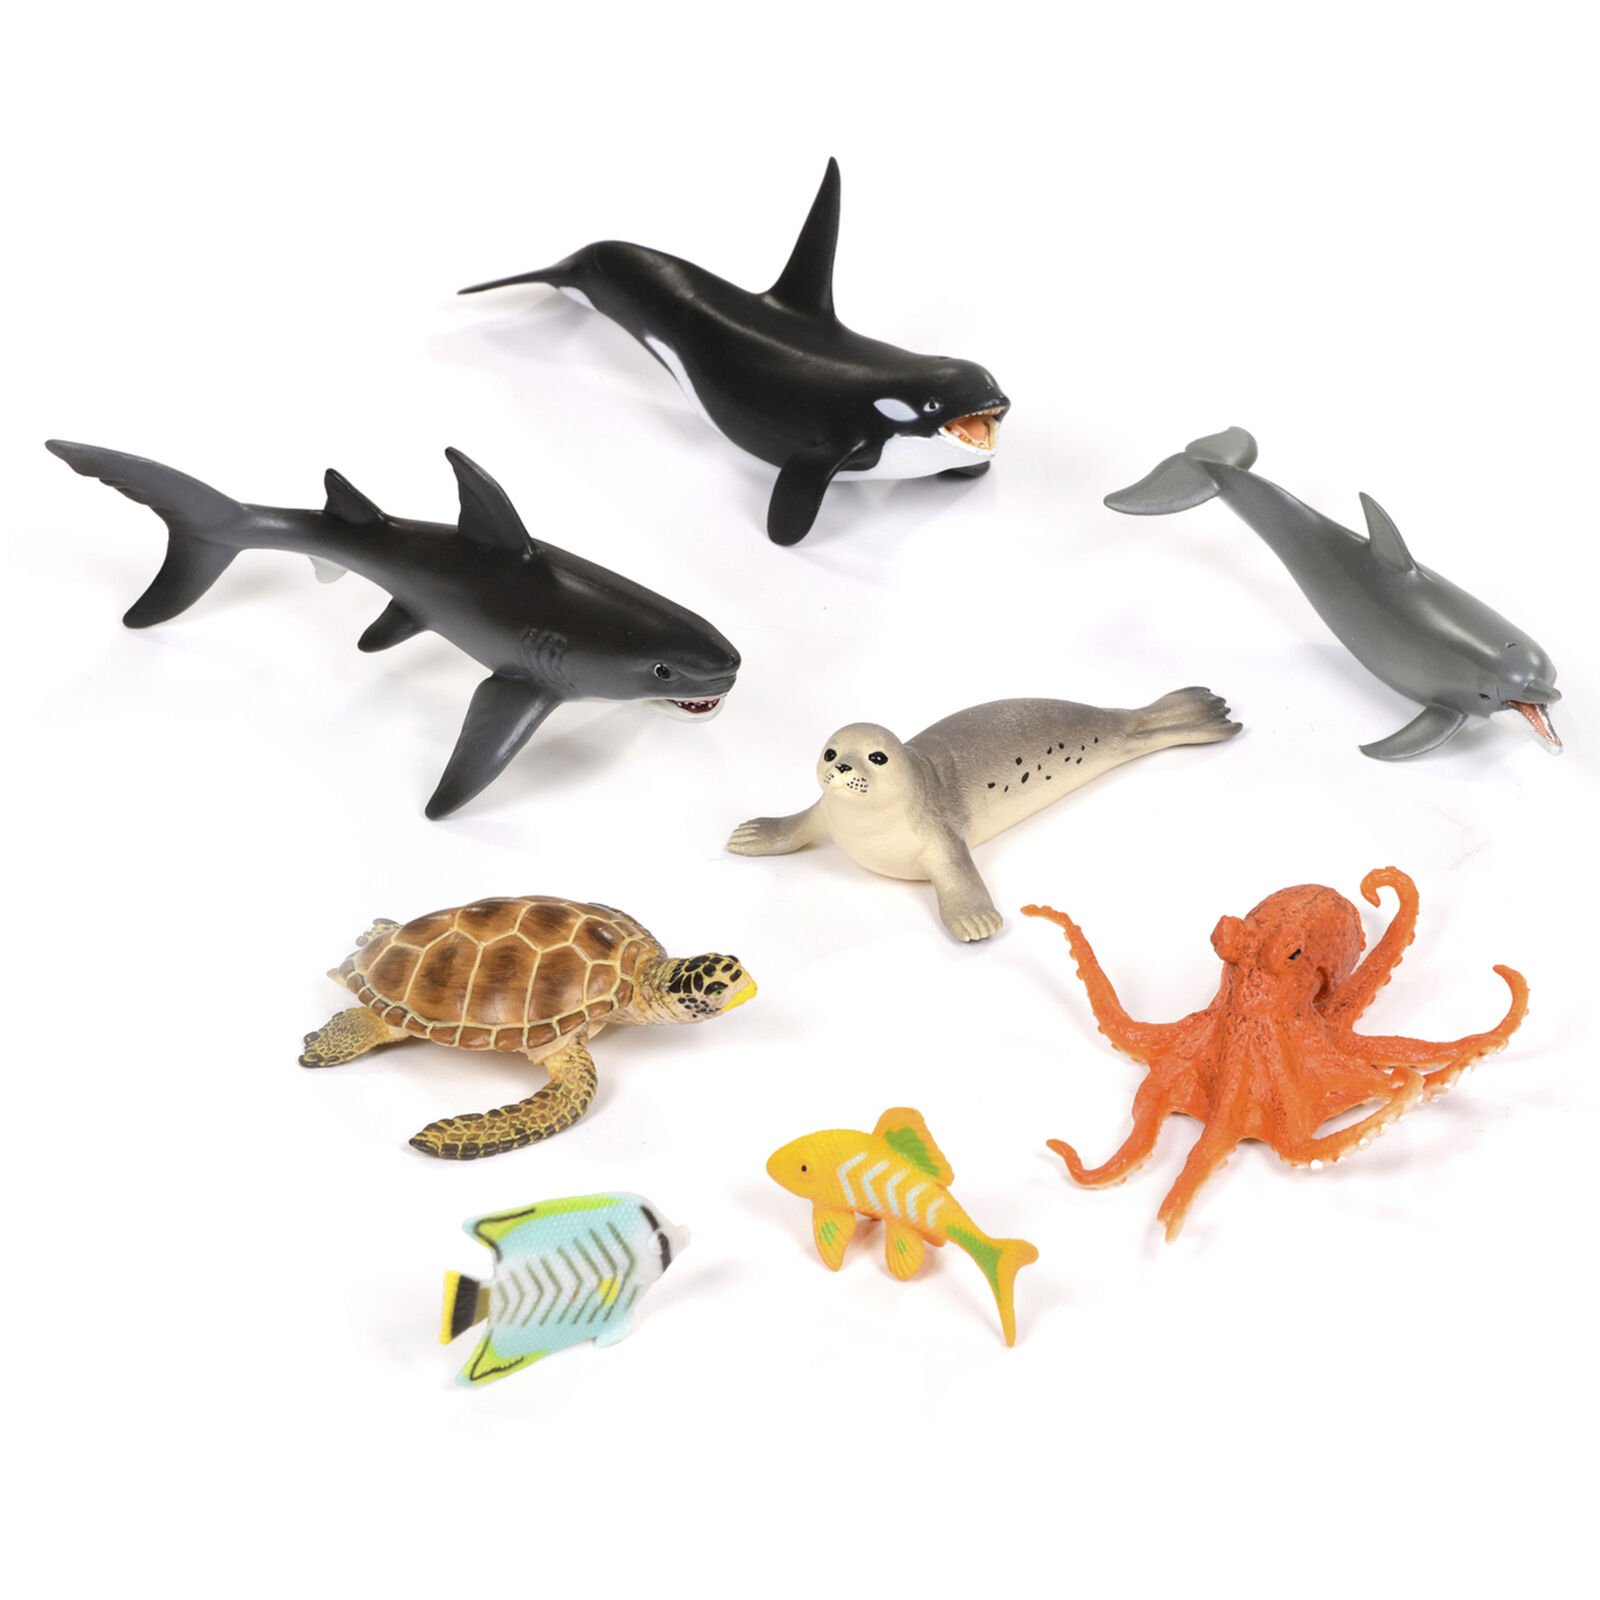 Sea Creatures Set EYFS, Science STEM Play, Habitat Exploration, Geography